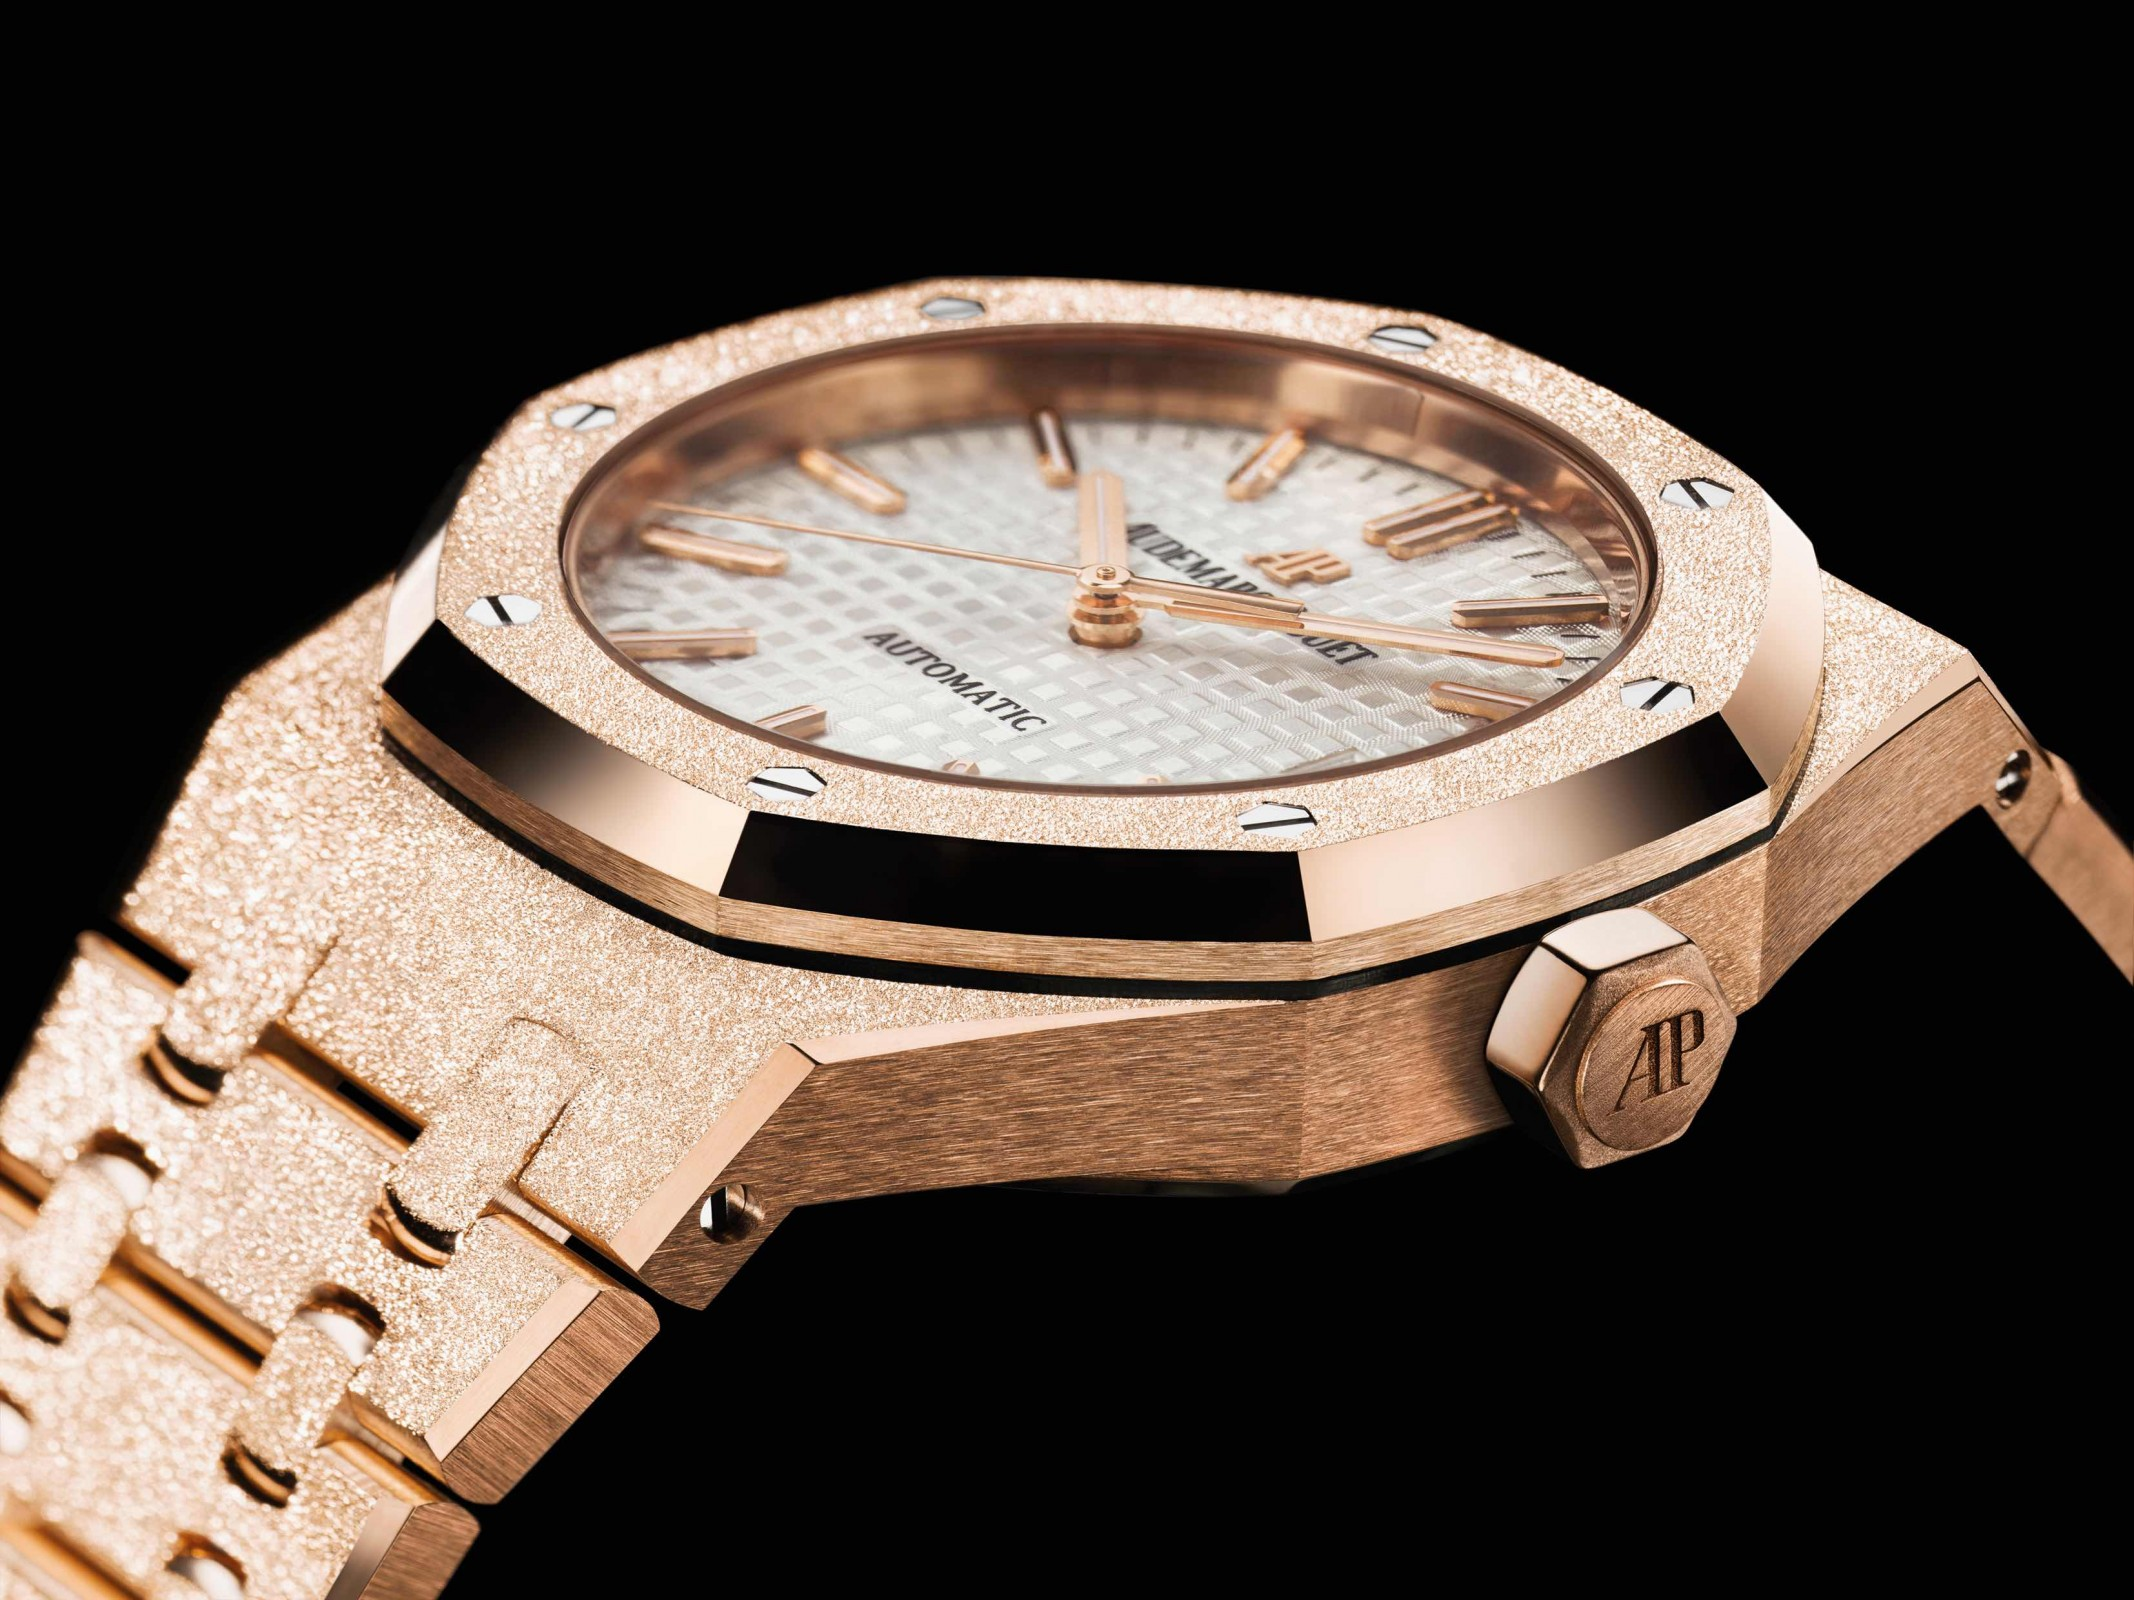 Audemars Piguet Launches The Royal Oak Frosted Gold